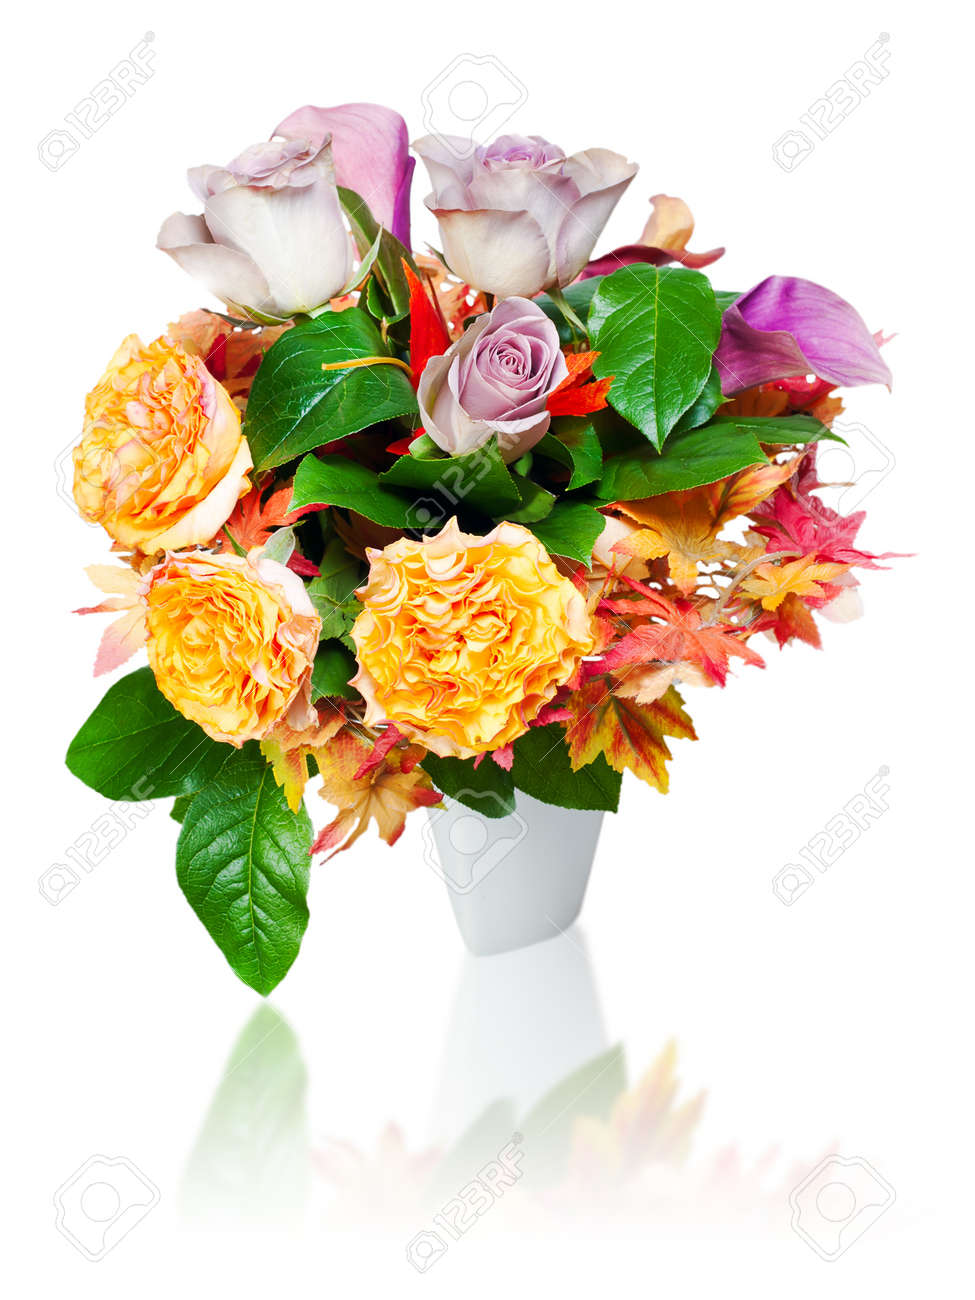 colorful autumn flower bouquet arrangement centerpiece in vase isolated on white background Stock Photo - 17688102